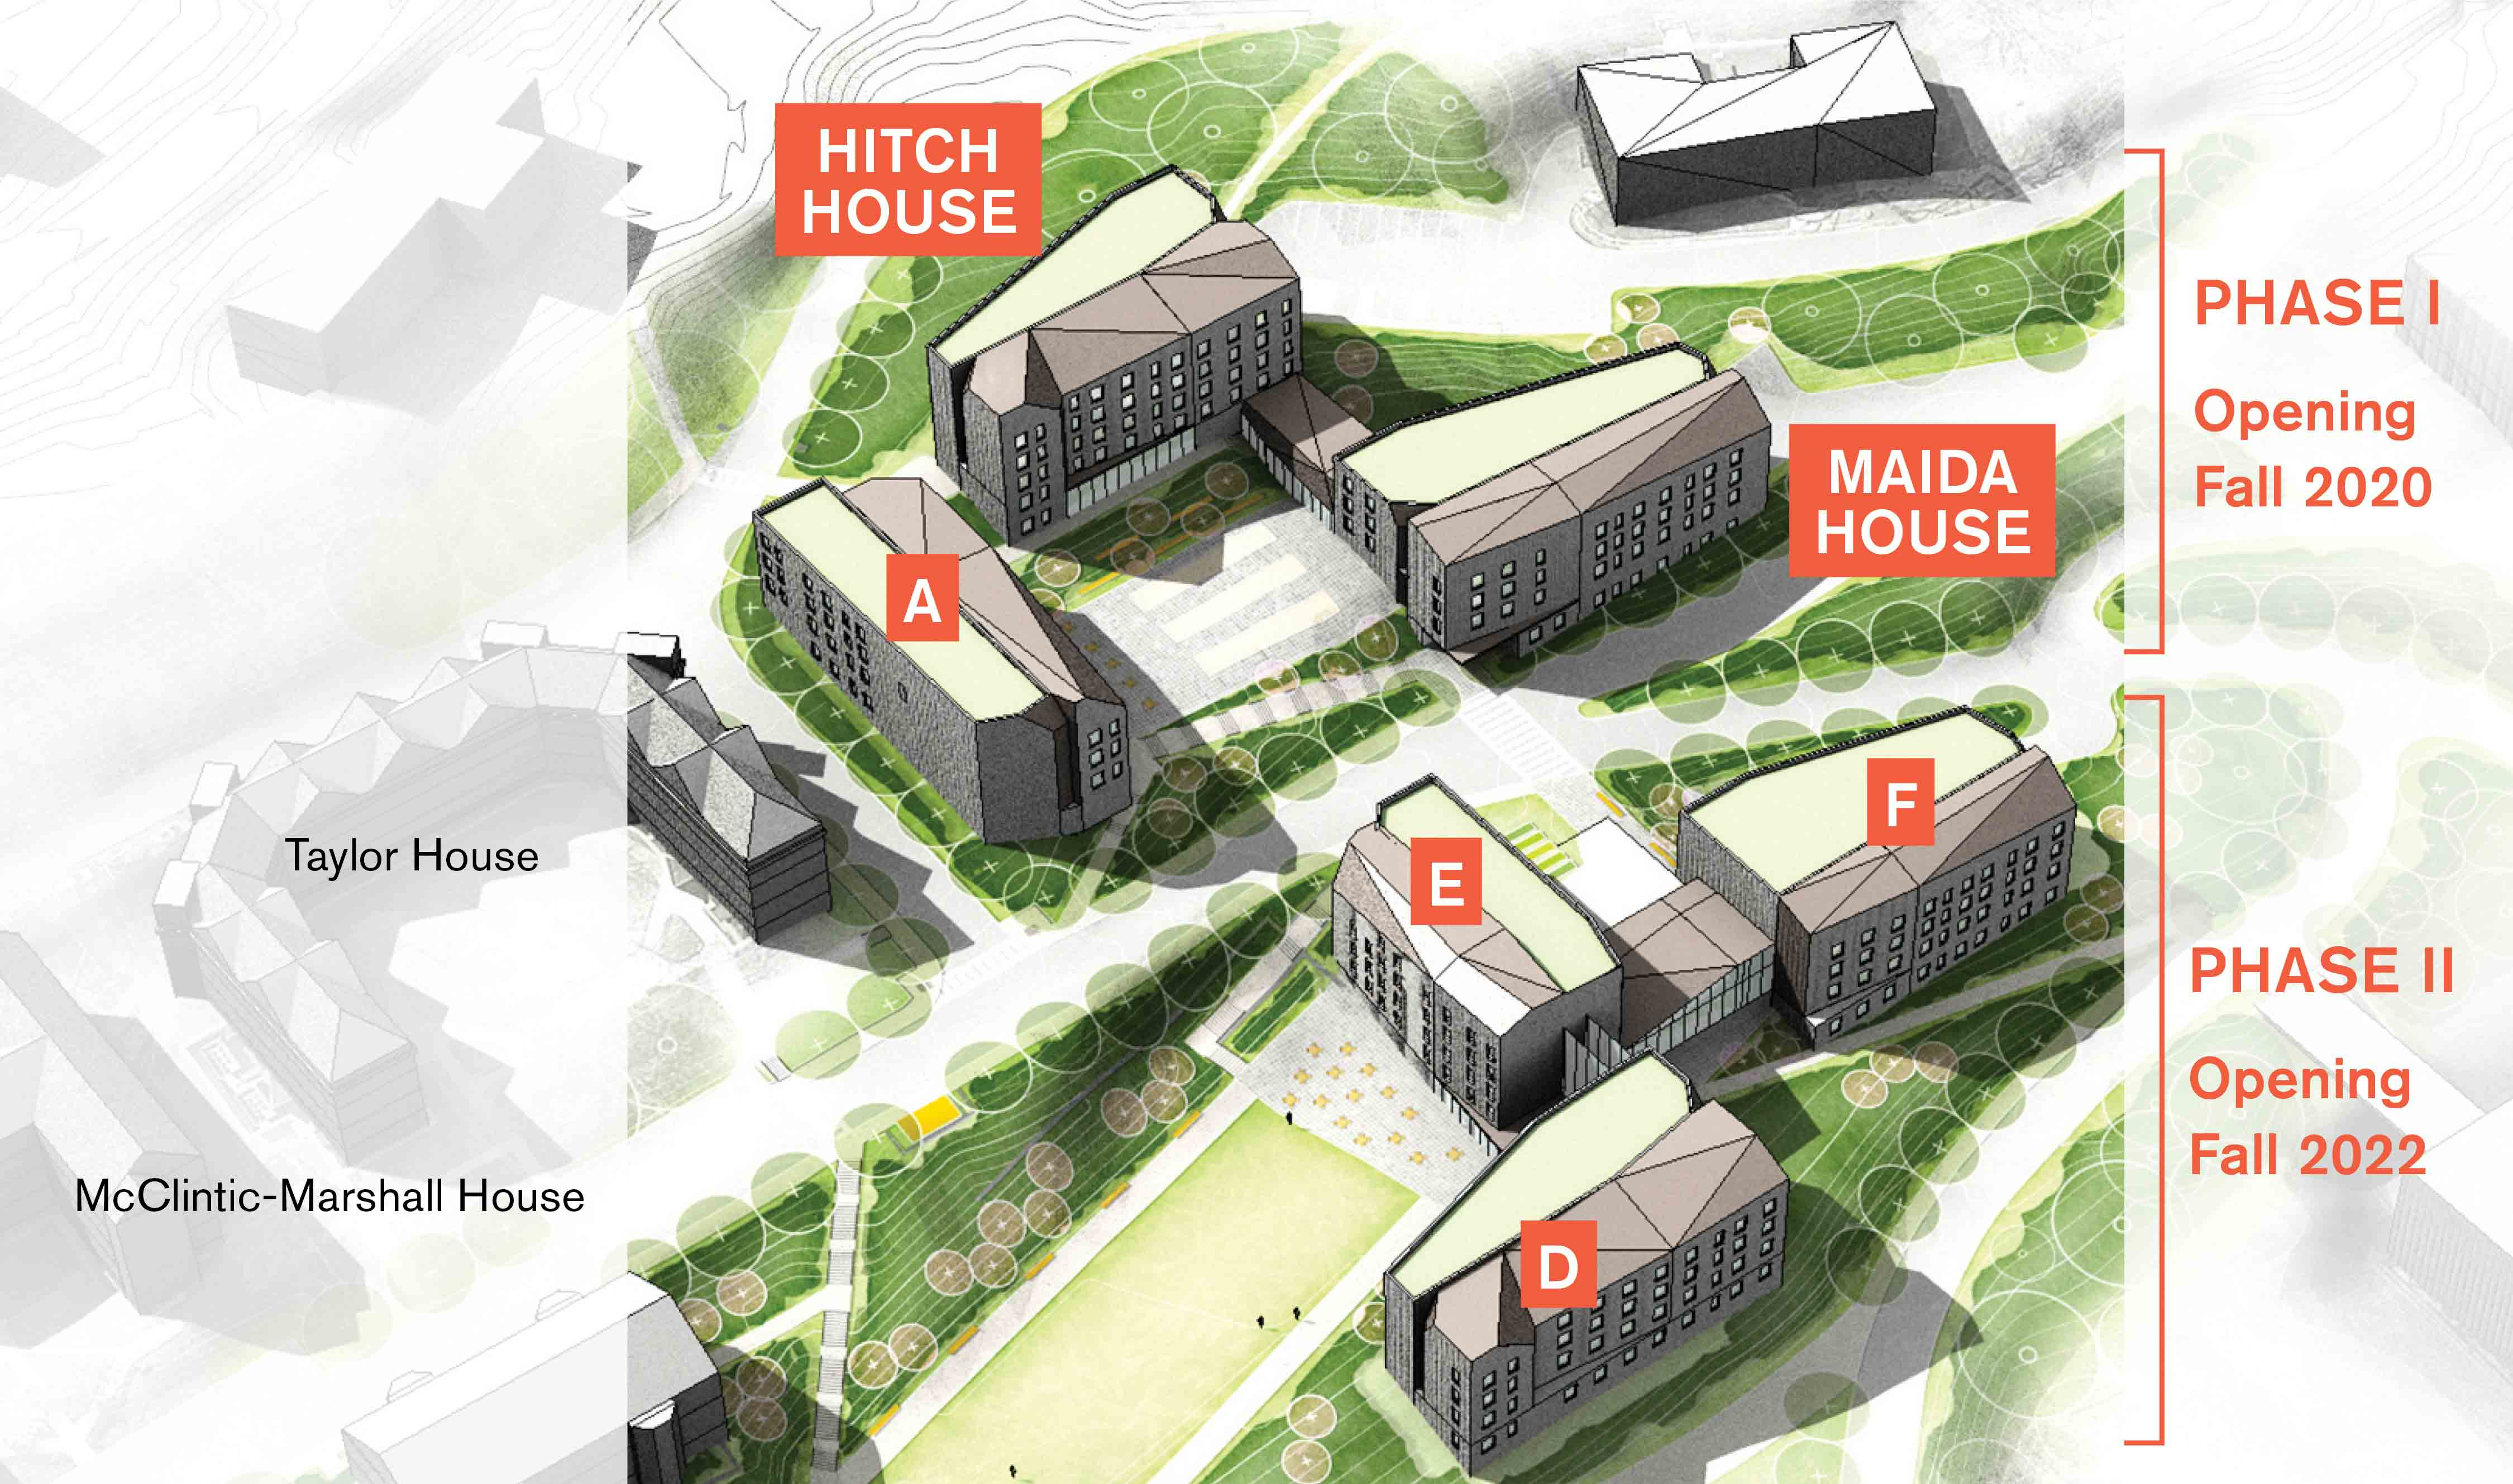 Rendering of the Hitch and Maida Houses at Lehigh University